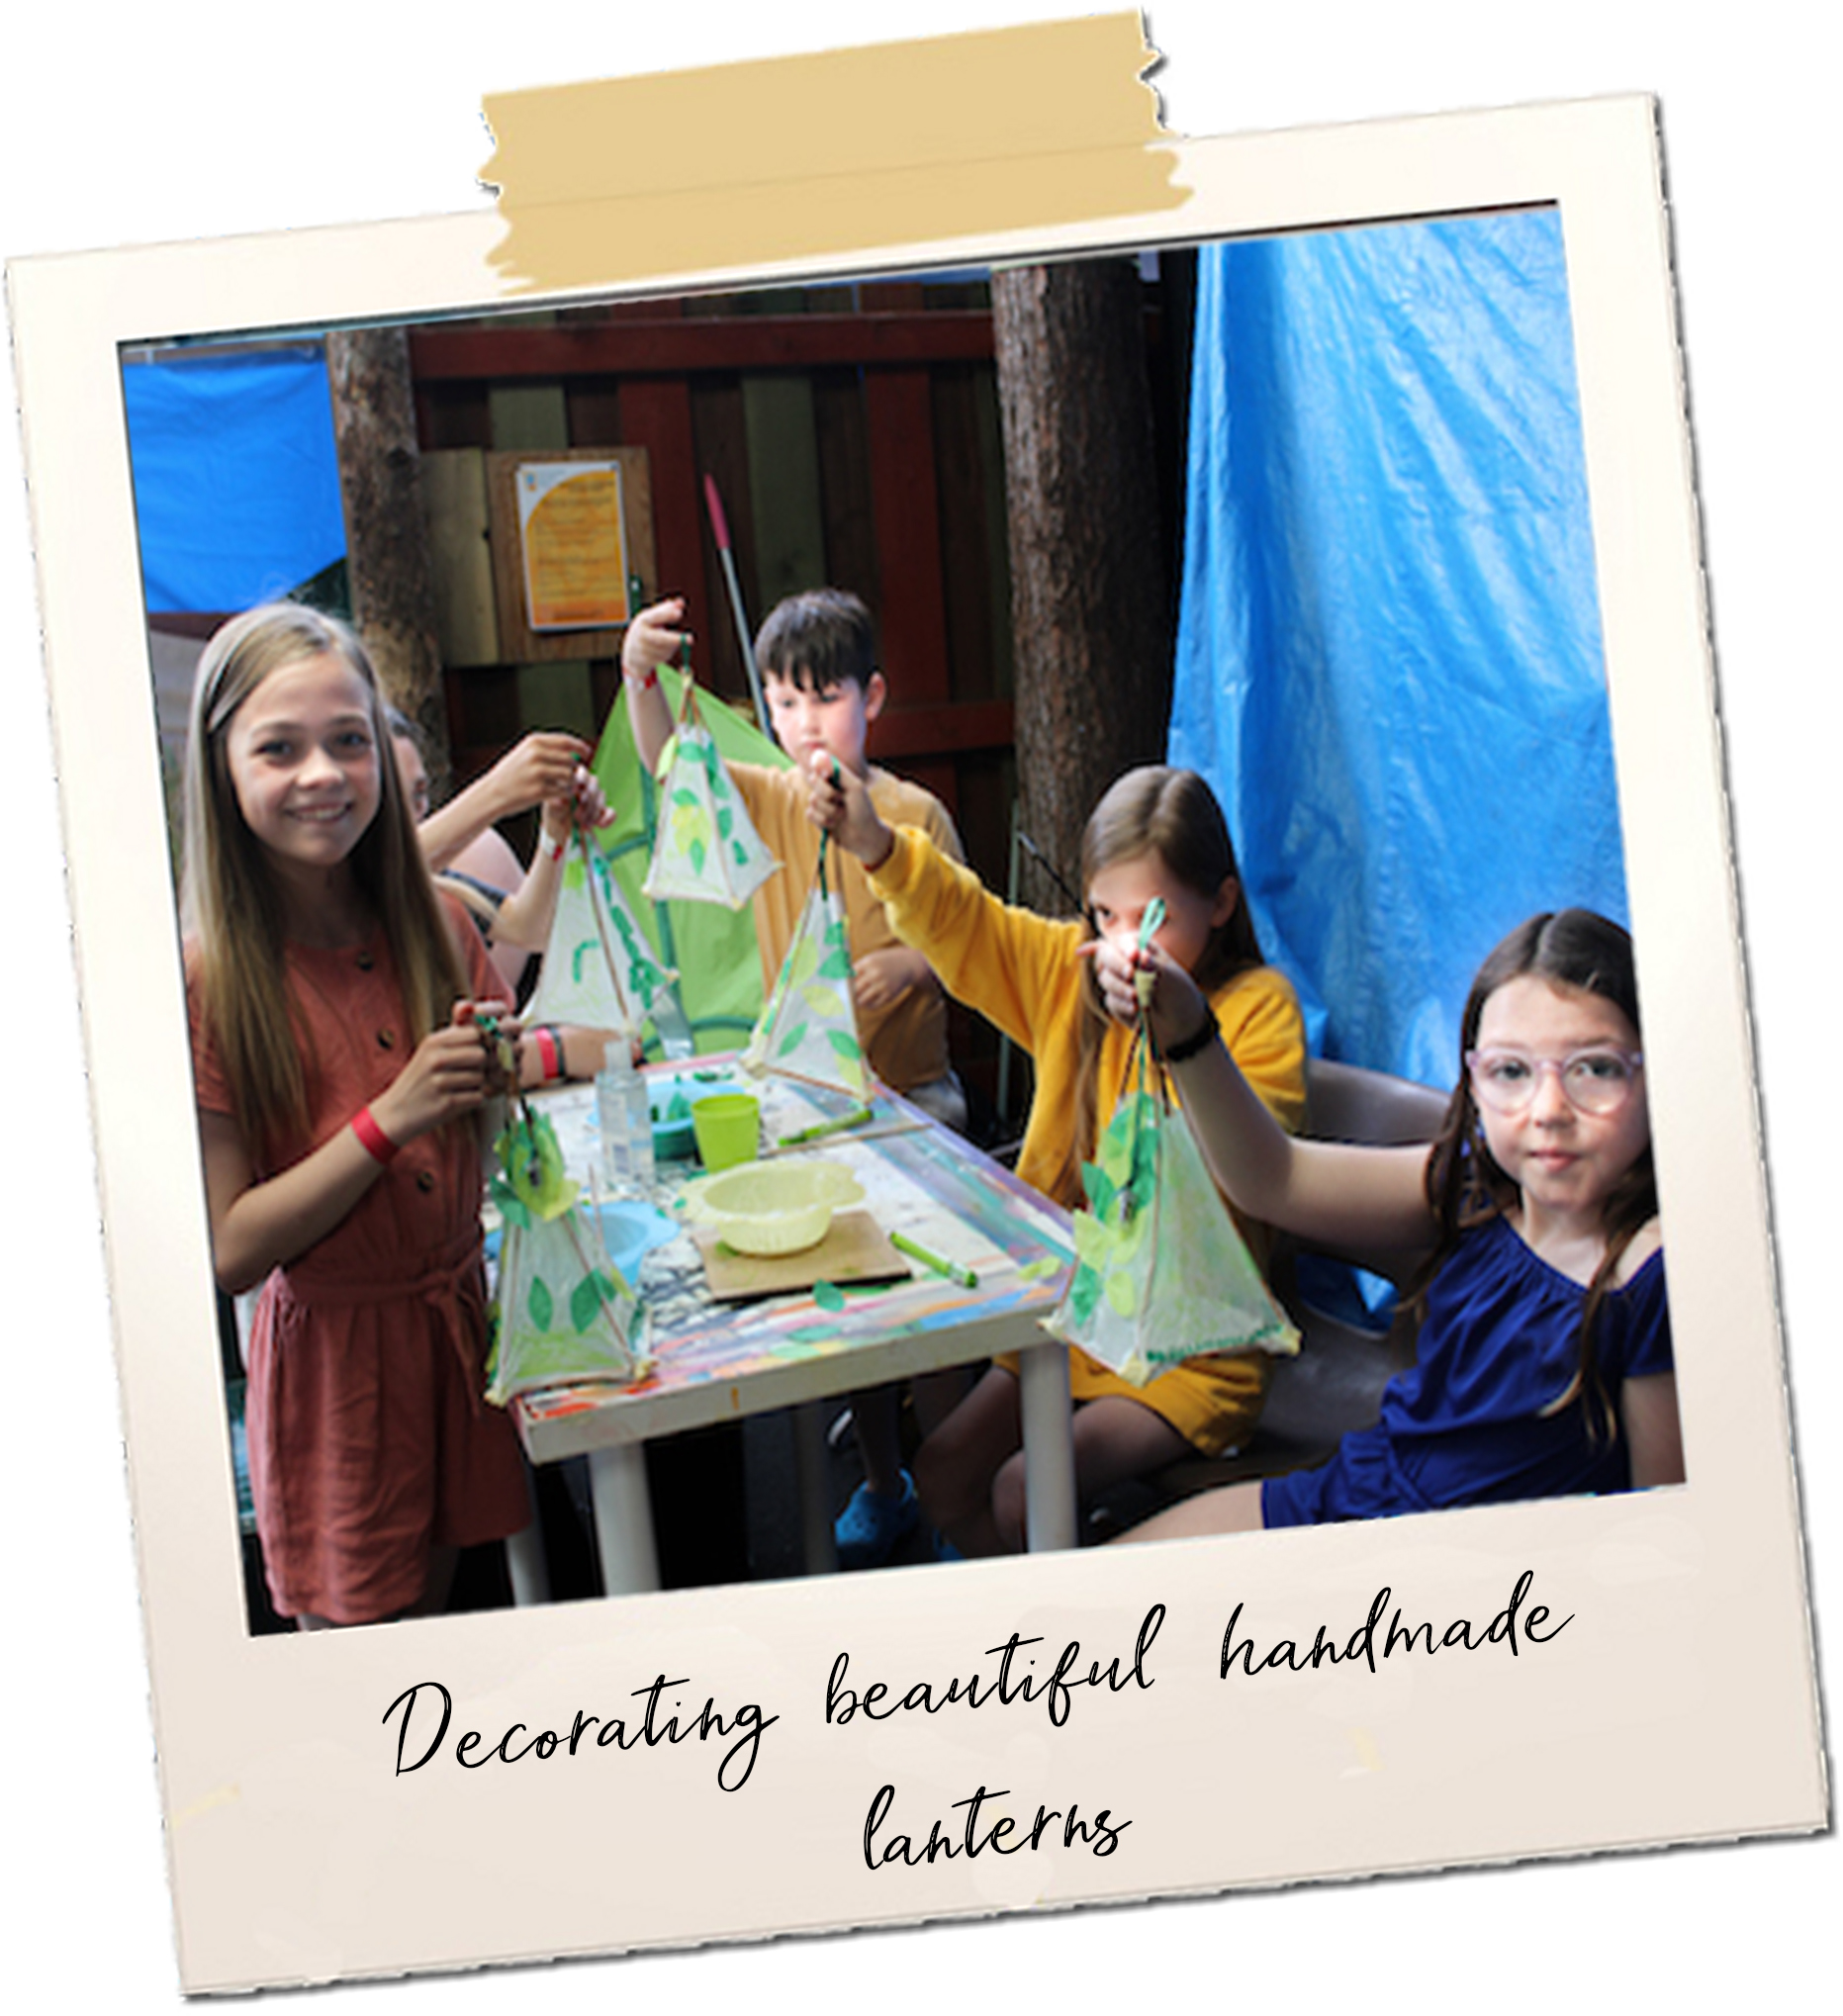 4 young people hold up handmade lanterns decorated with leaves